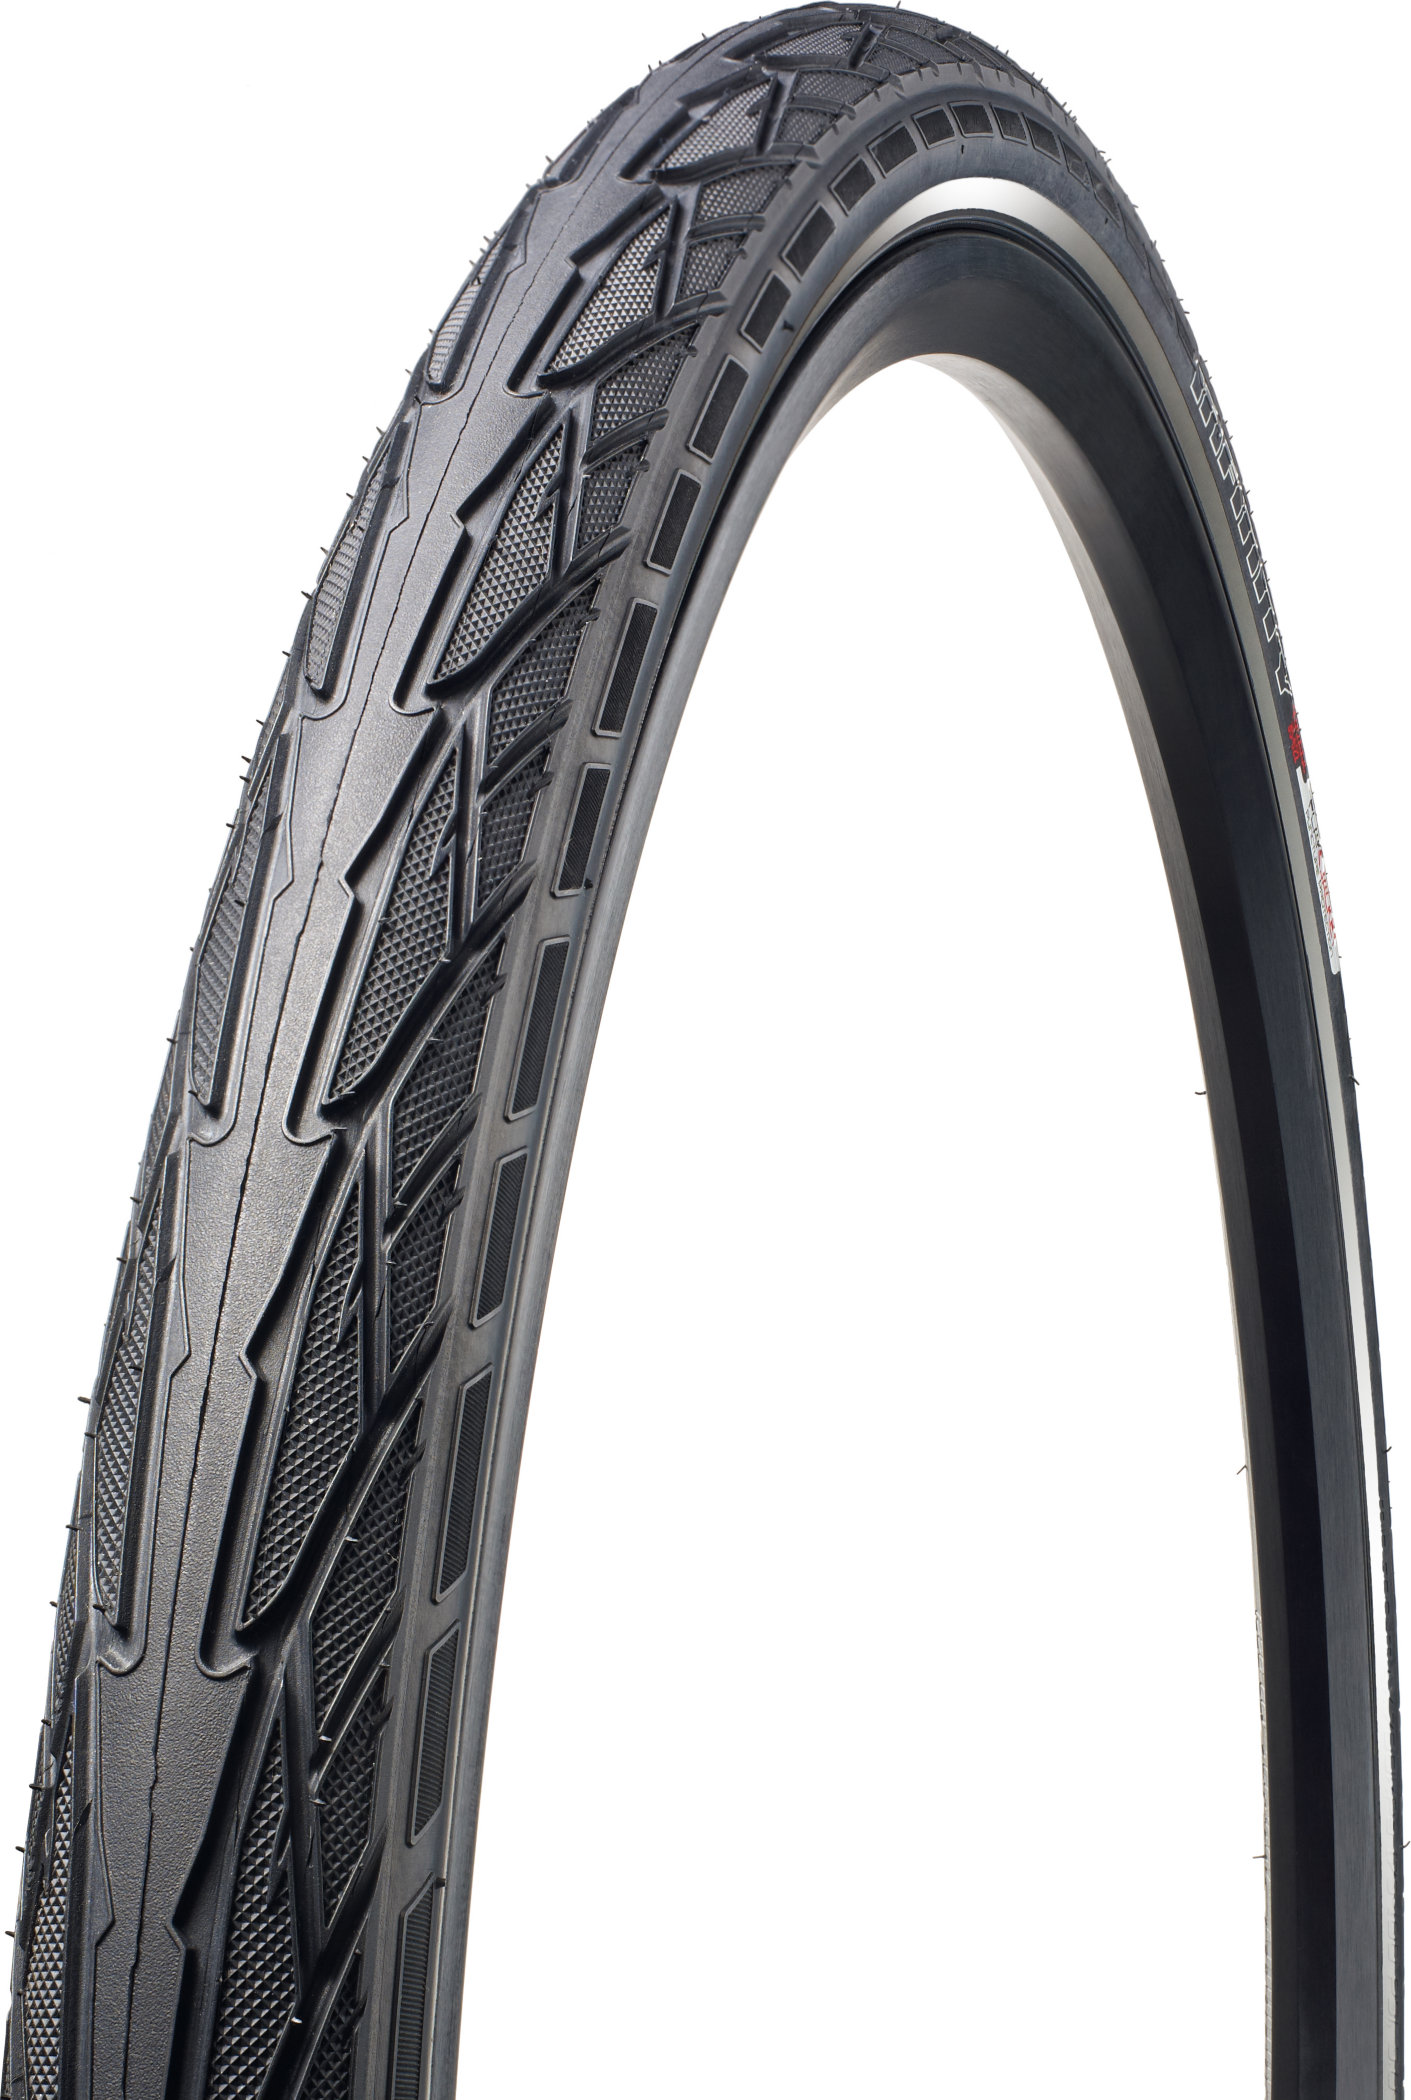 SPECIALIZED INFINITY ARM REFLECT TIRE 700X32C - Alpha Bikes